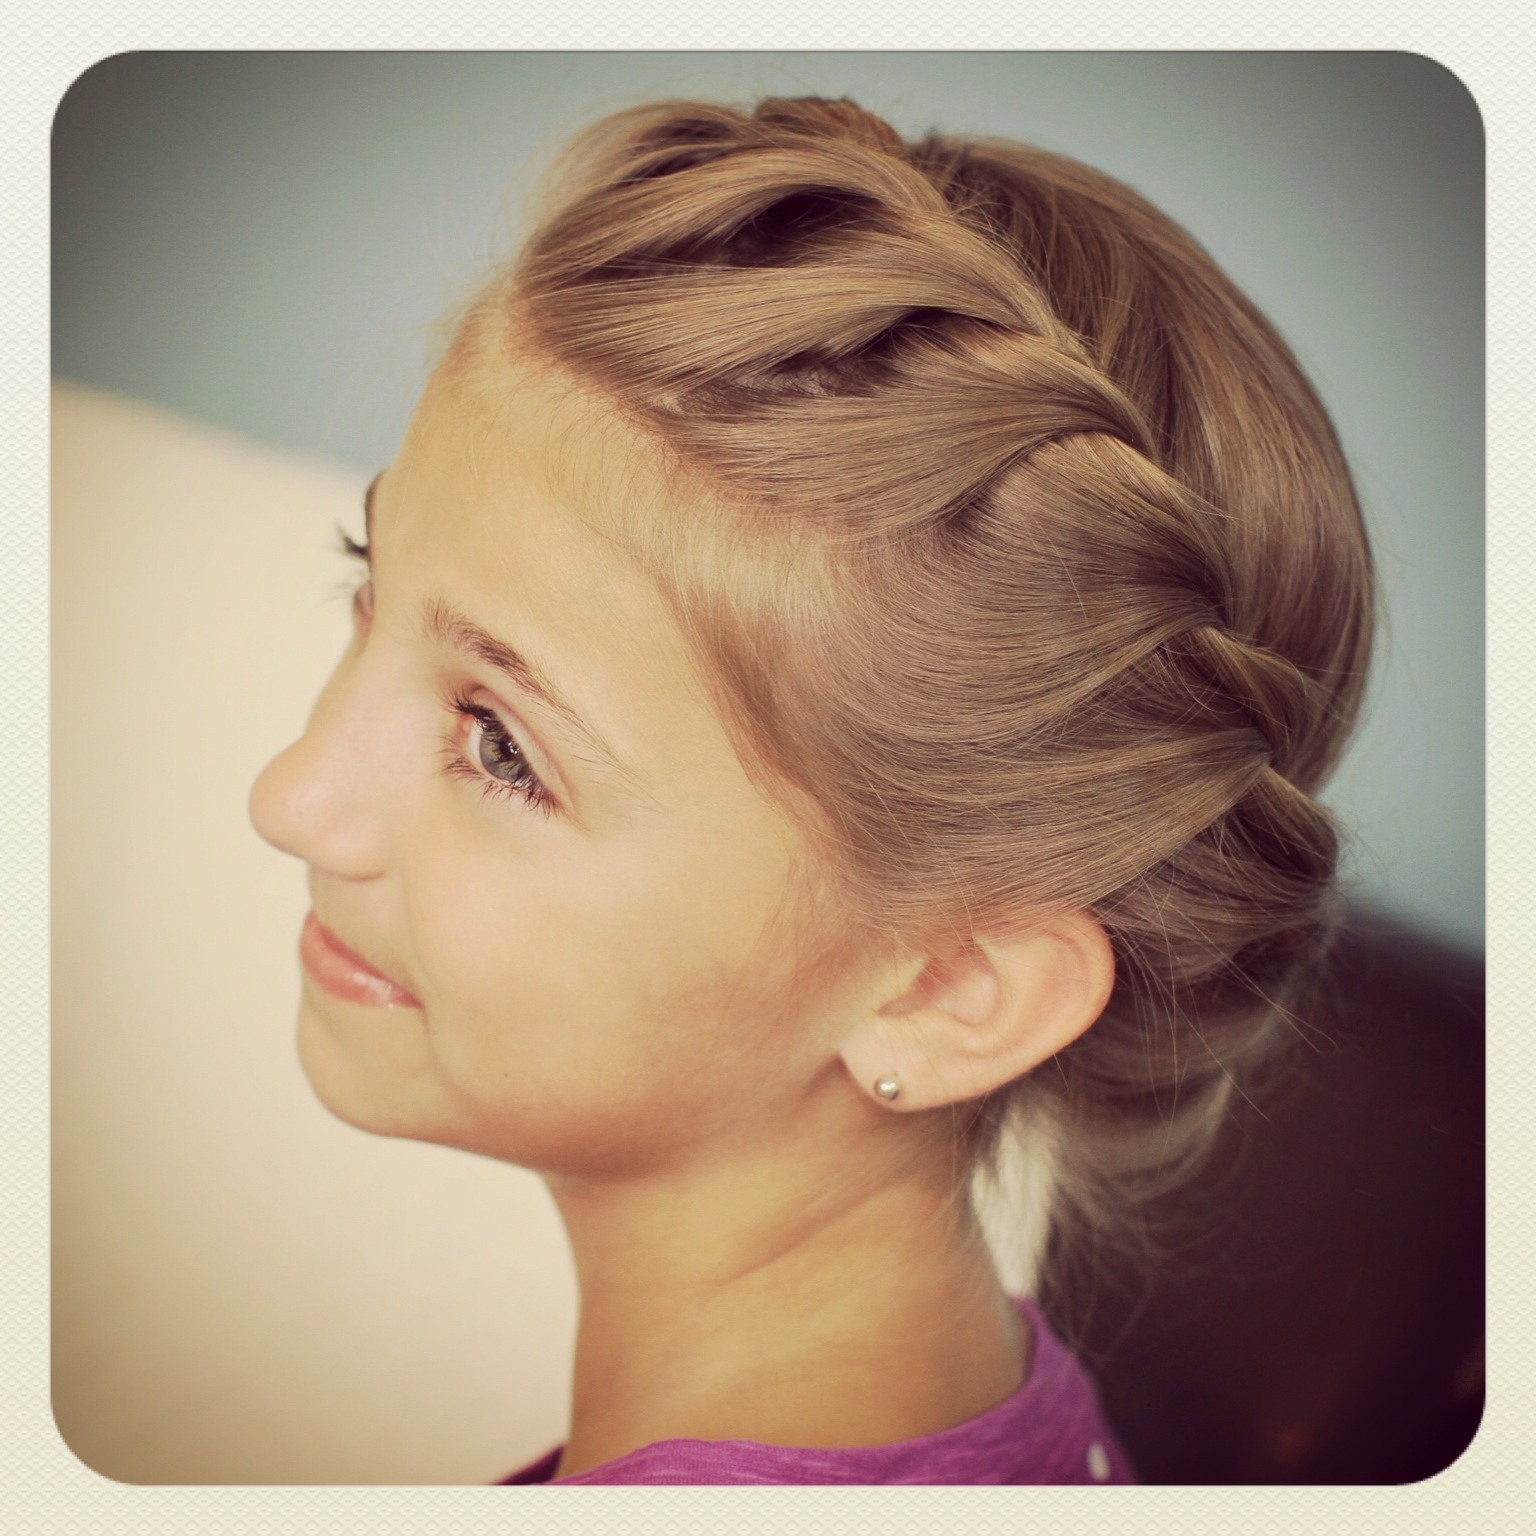 Updo Hairstyles (View 15 of 20)